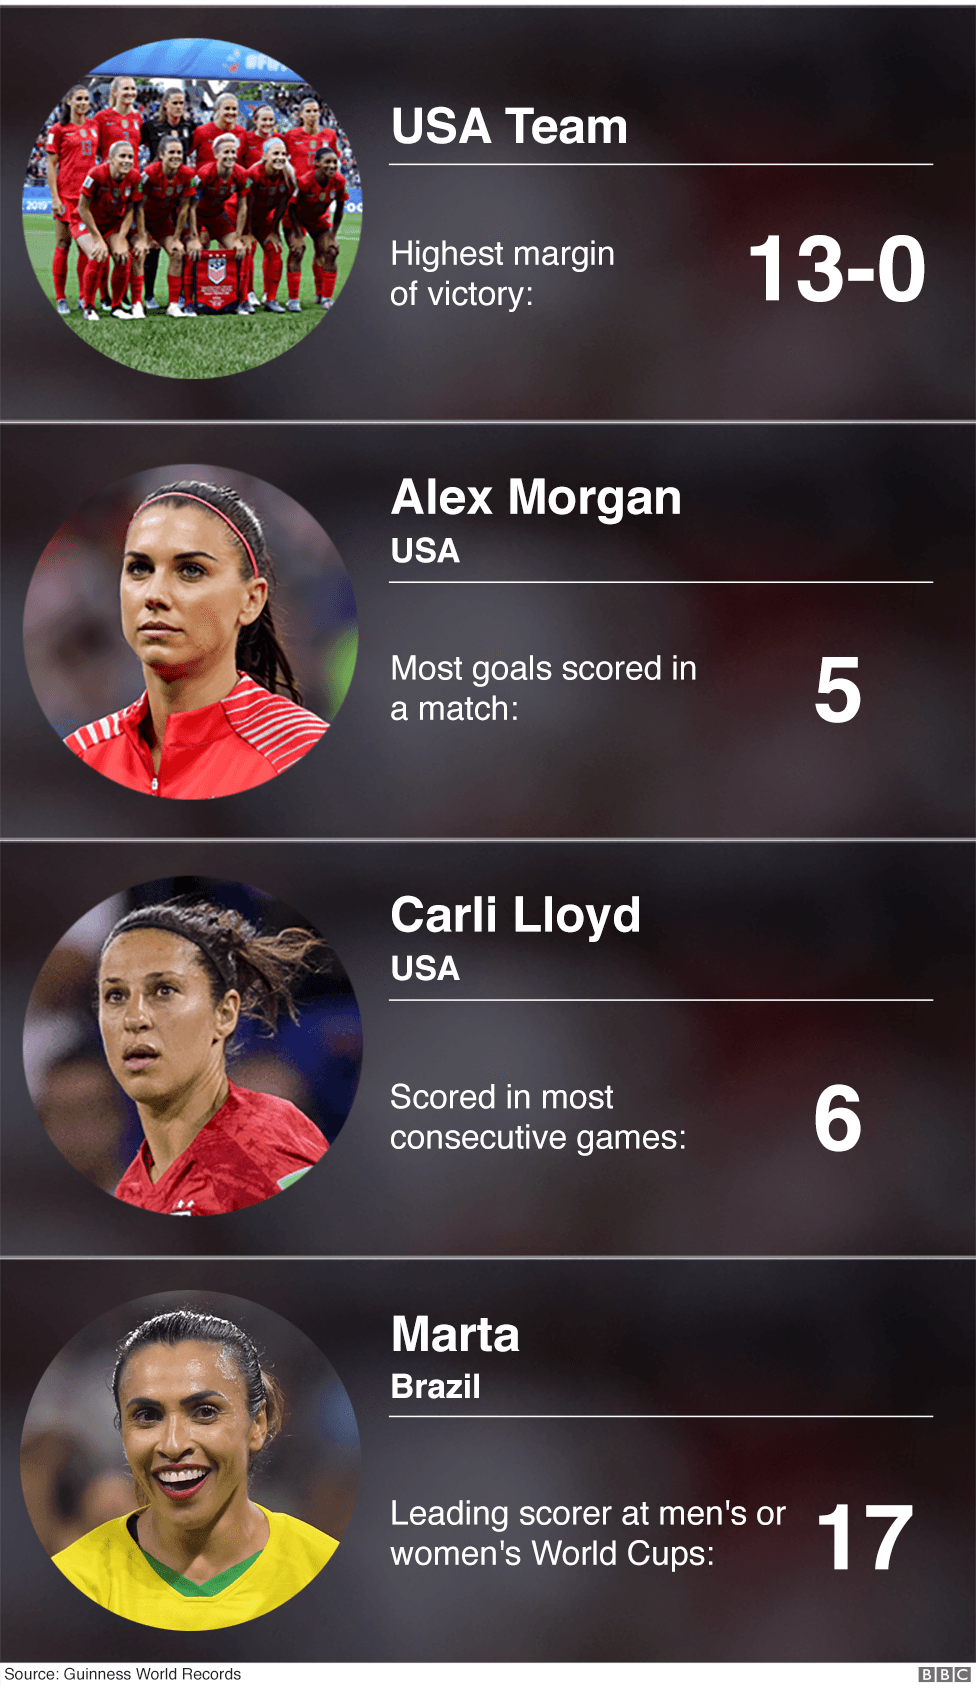 Record breakers - USA team, Alex Morgan, Carli Lloyd, Marta